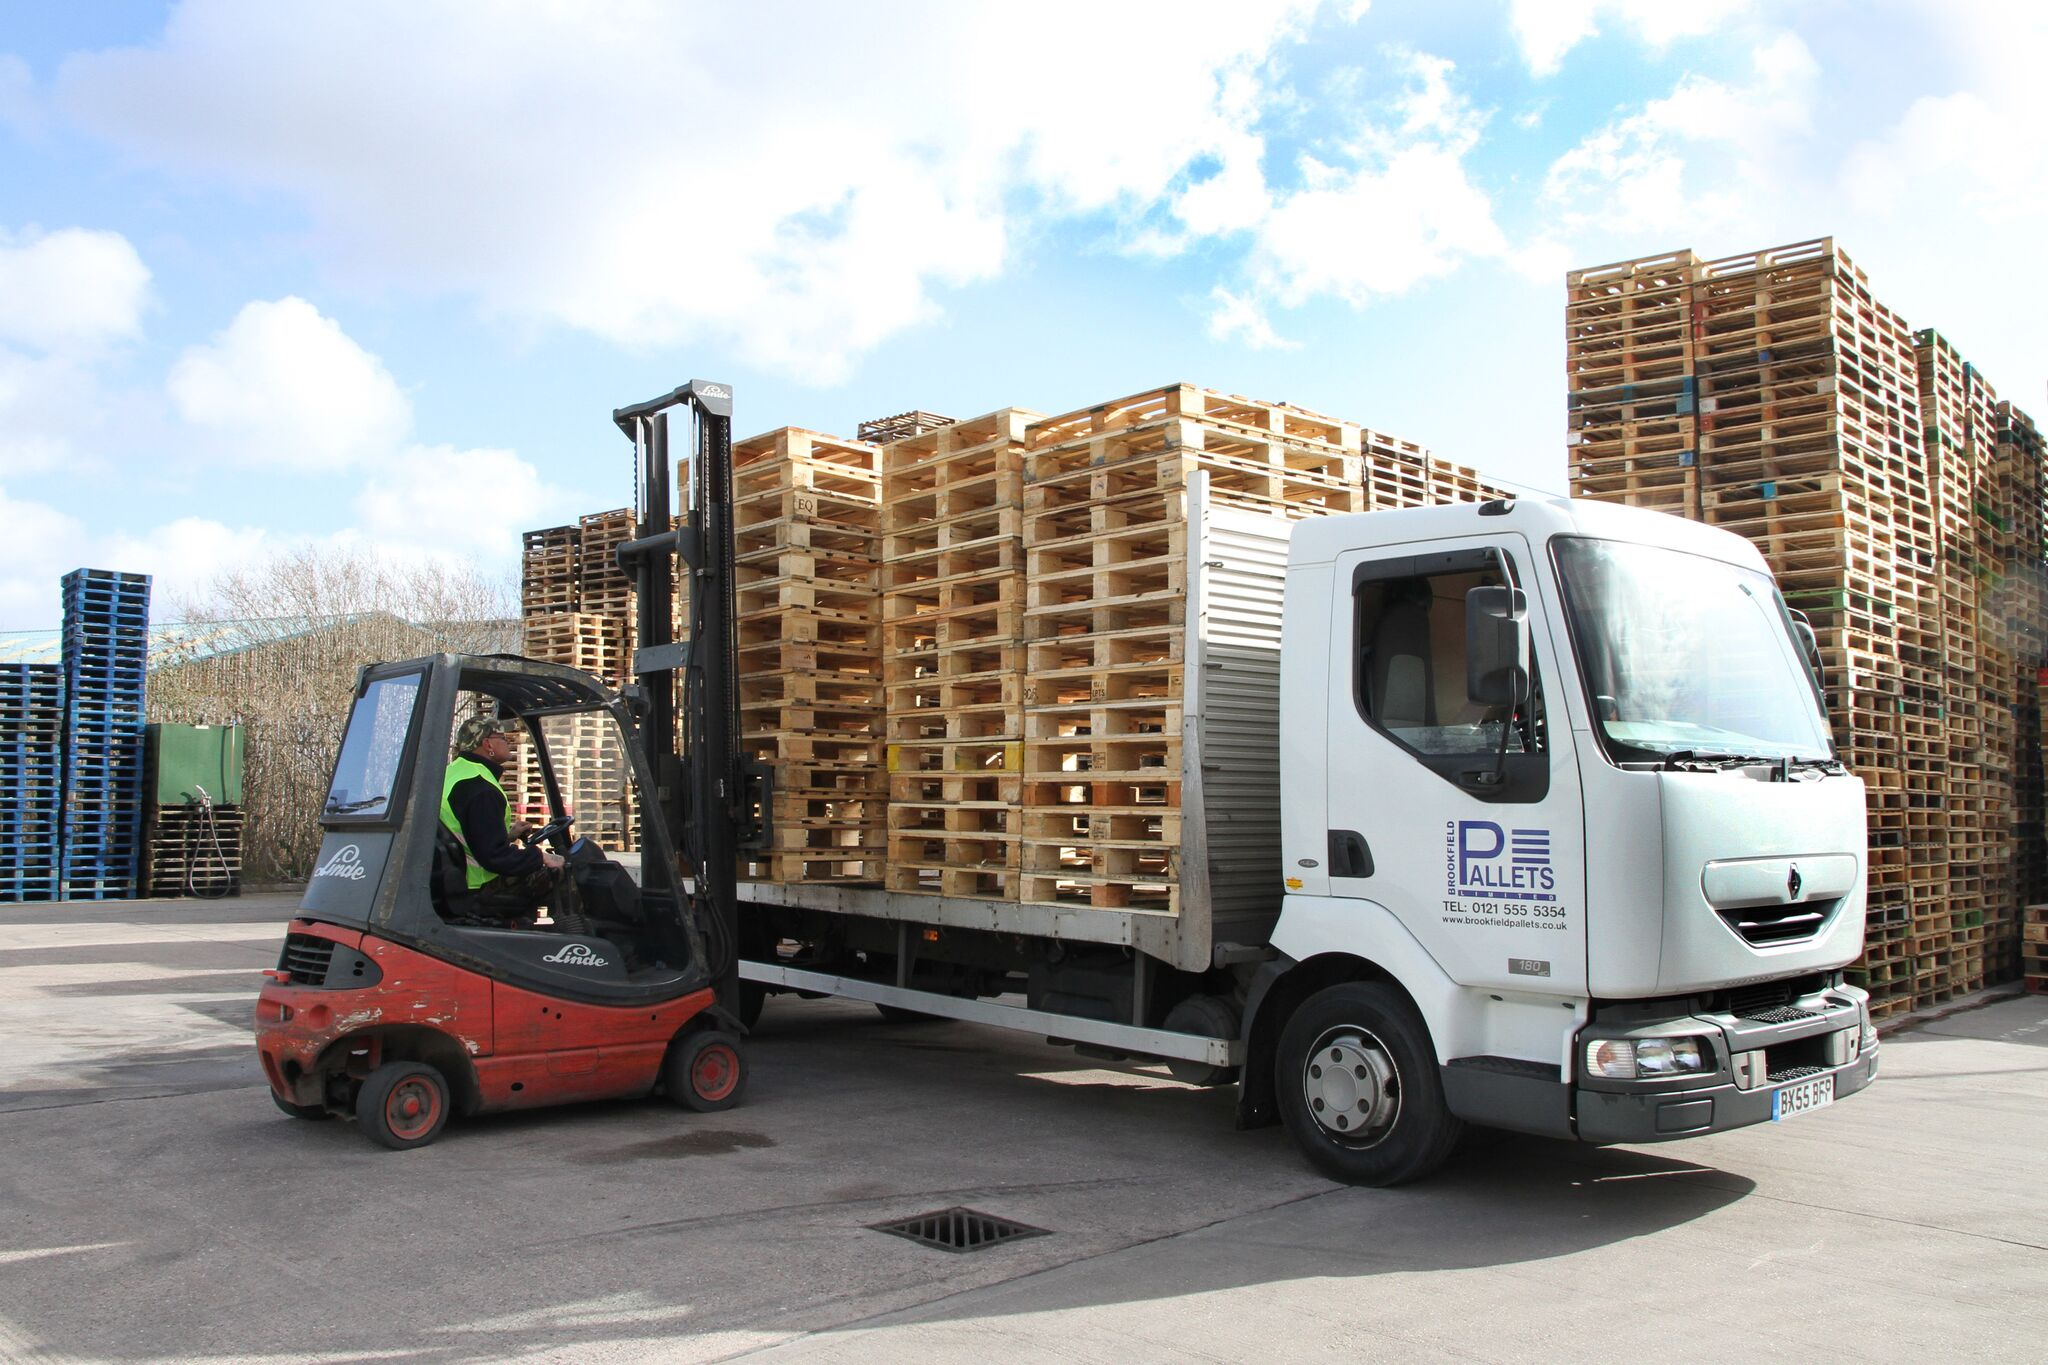 brookfield pallets truck